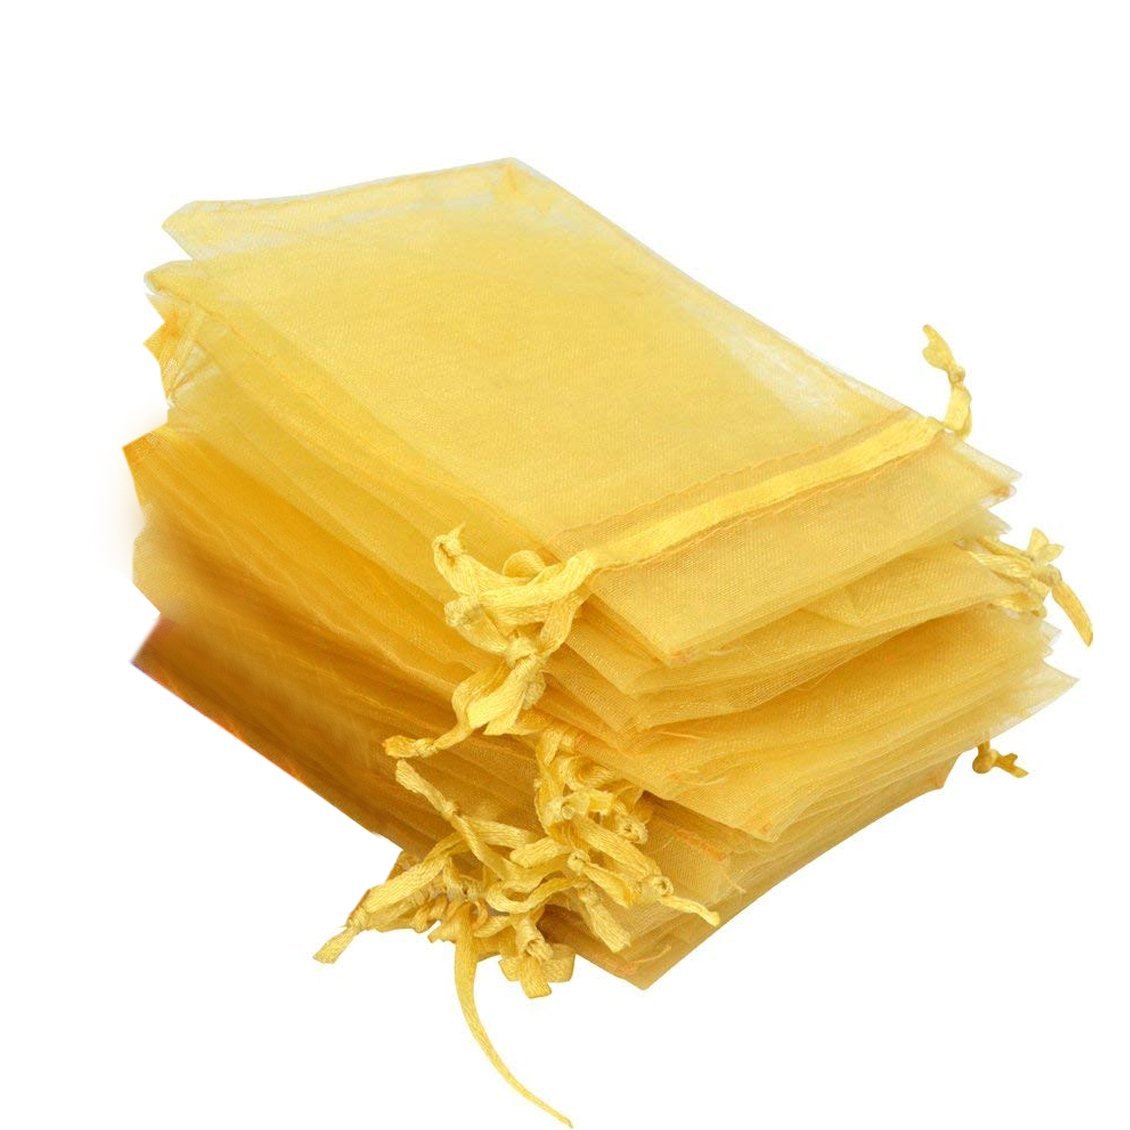 OurWarm 100pcs Organza Pouch Bag Drawstring 4x6' 10x15cm Strong Gift Candy Bag Jewelry Party Wedding Favor Gold